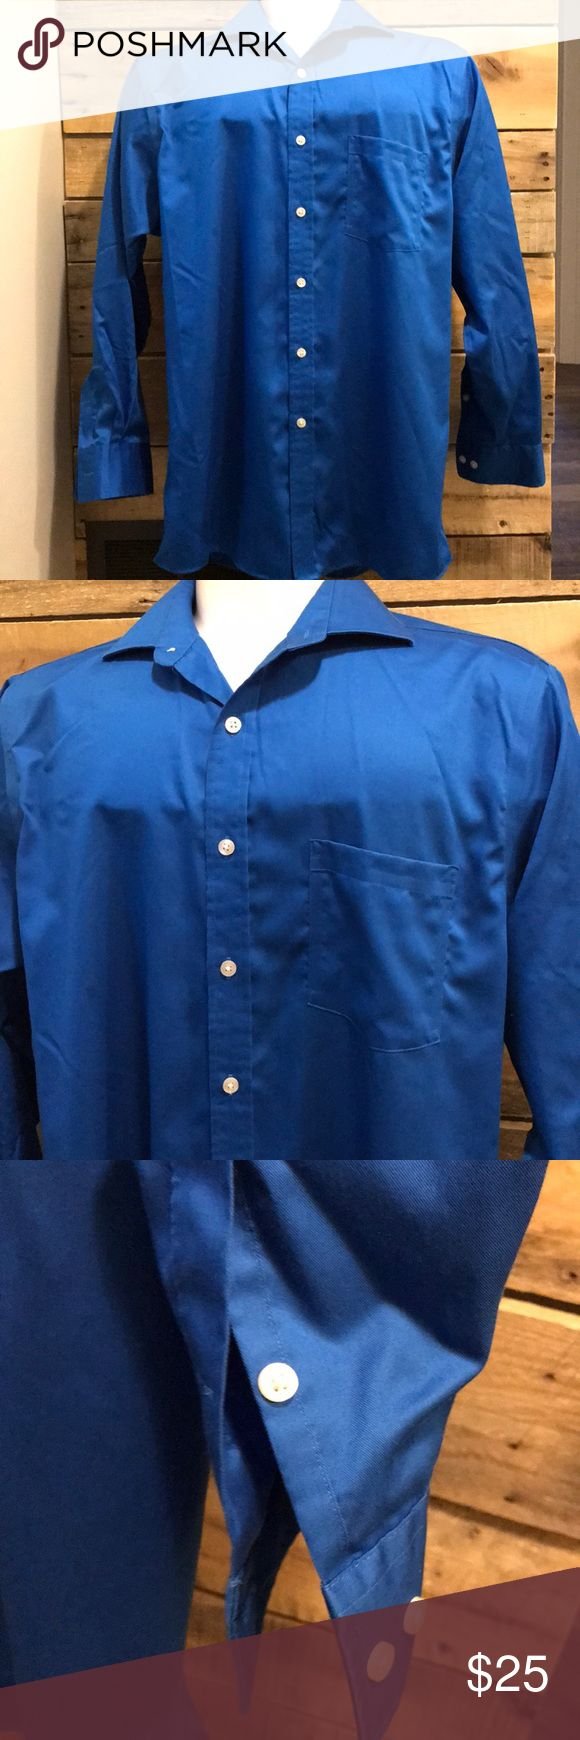 Michael KORS button up non iron shirt 👔 Non iron! Line new! Bold color. Size large (16 1/2   32/33). Machine wash and dry. MICHAEL Michael Kors Shirts Dress Shirts